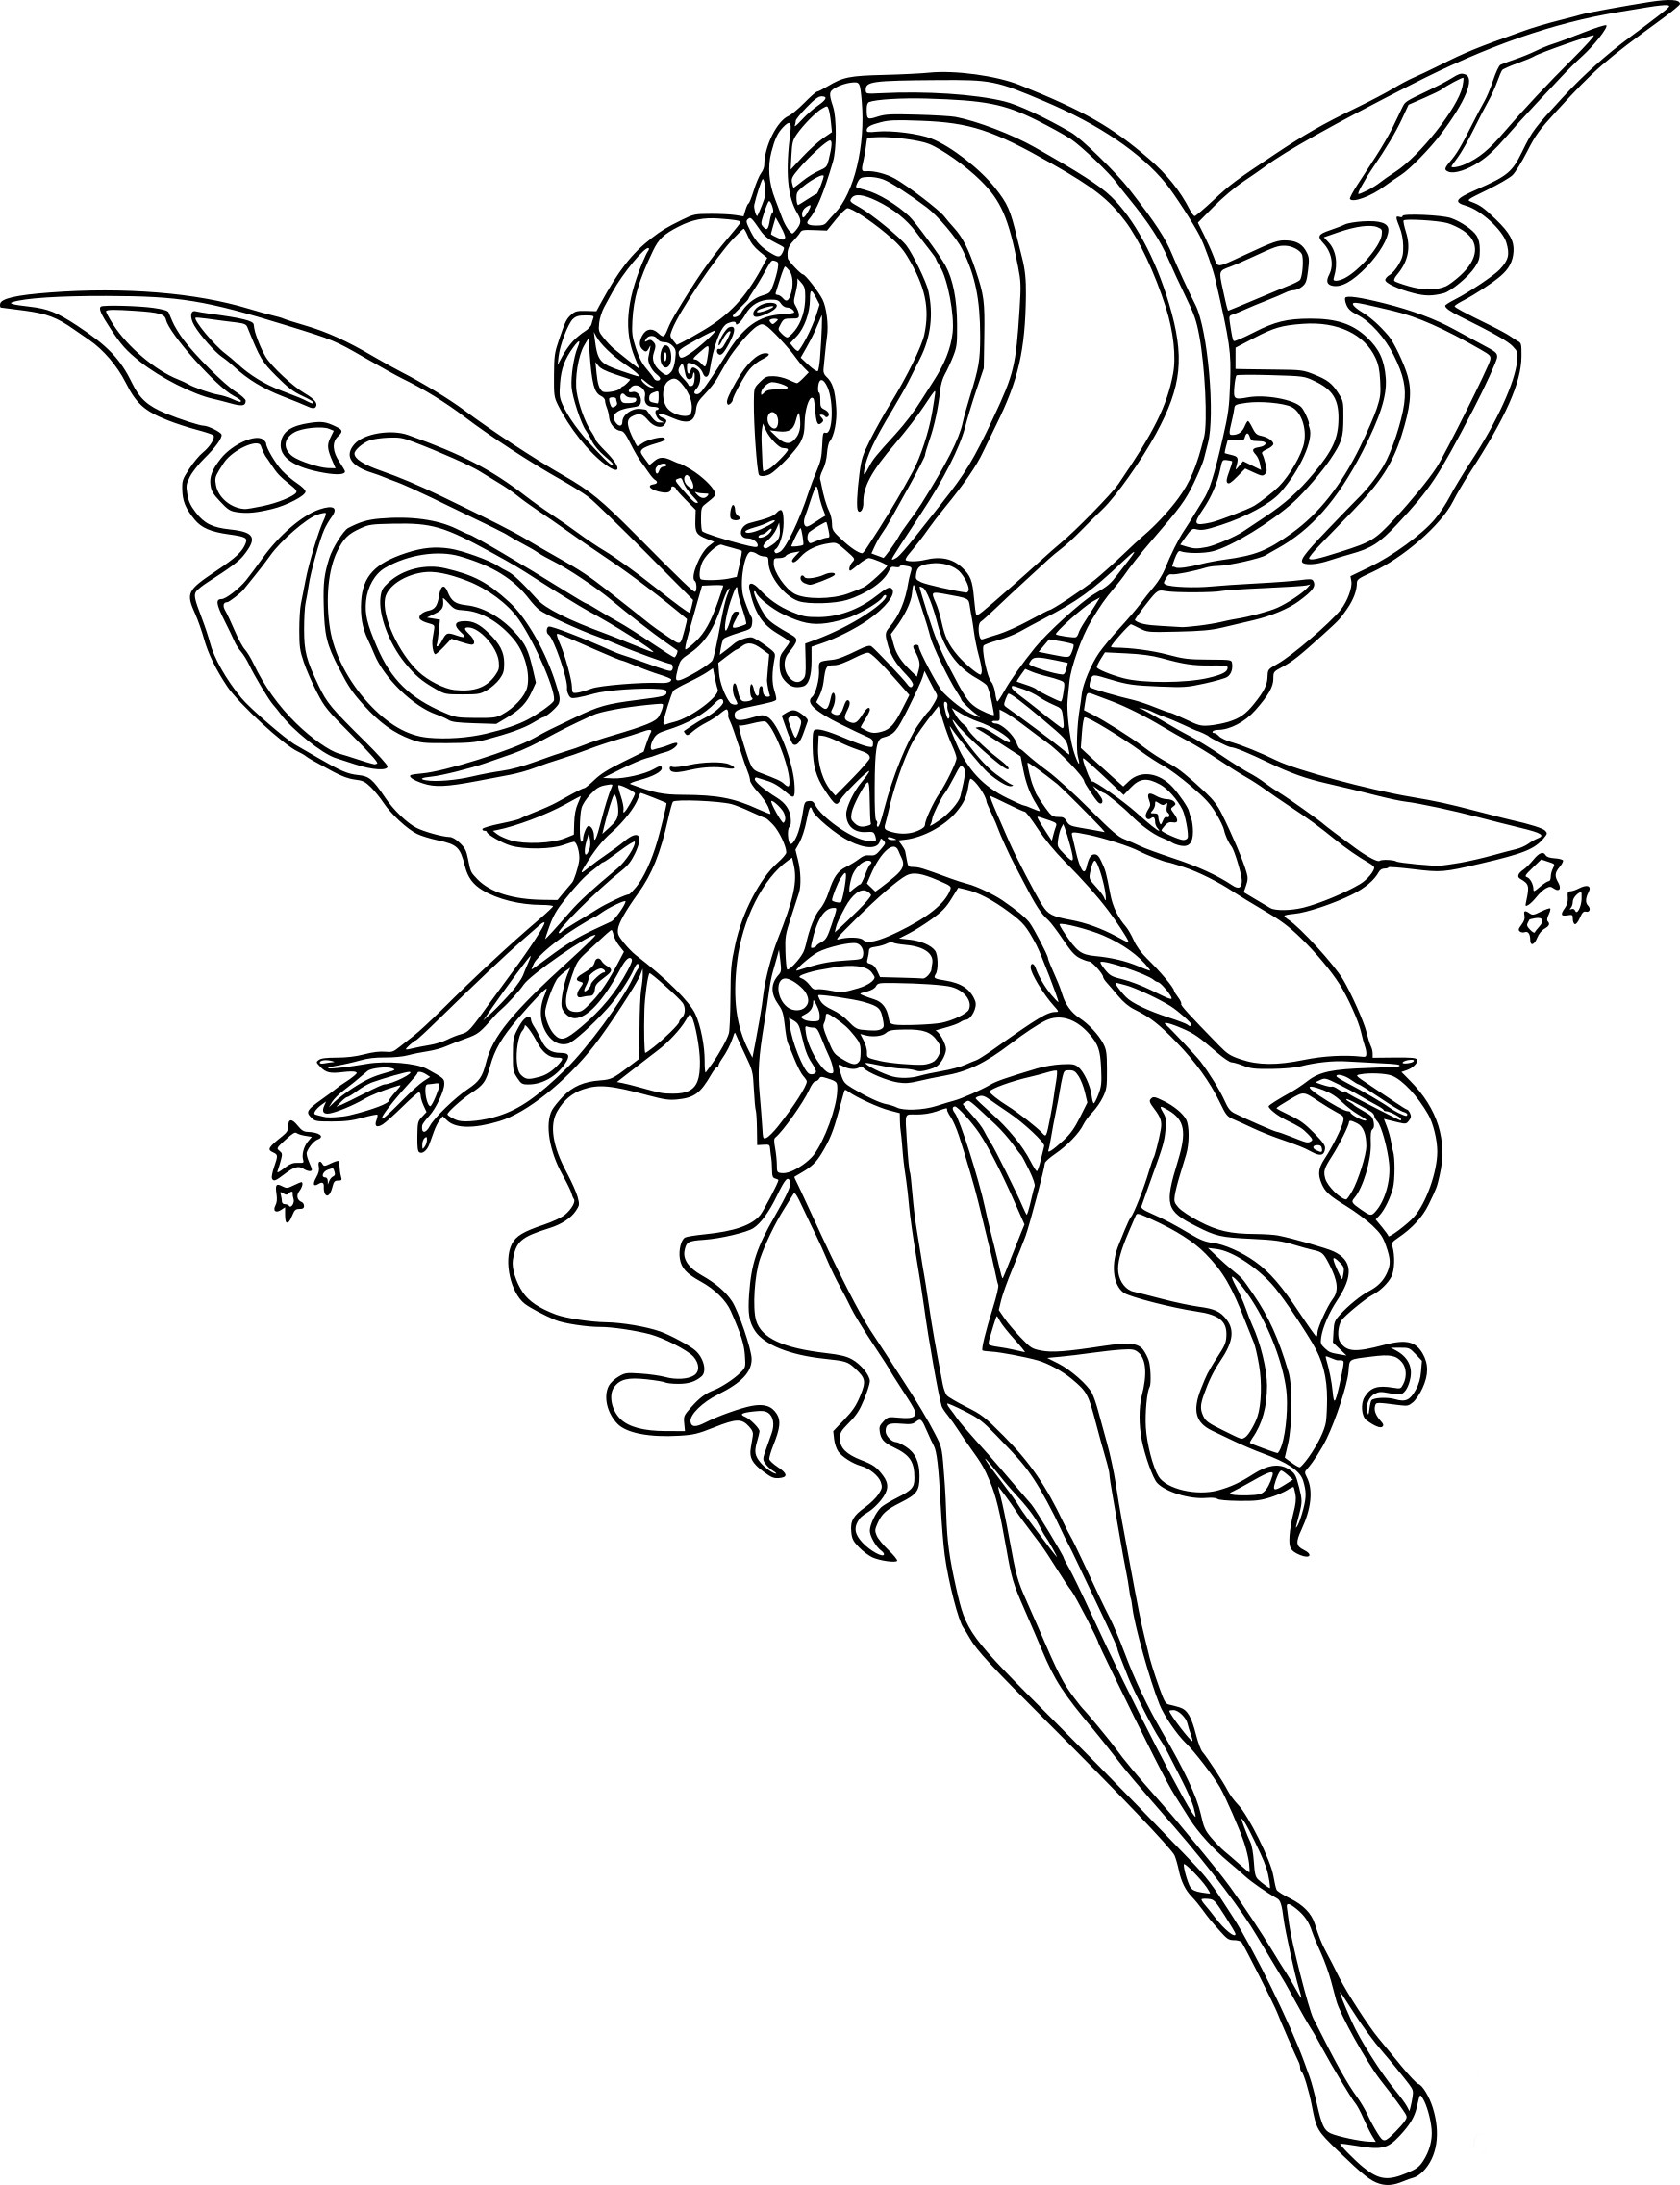 Coloriage stella bloomix imprimer - Coloriage winx bloom ...